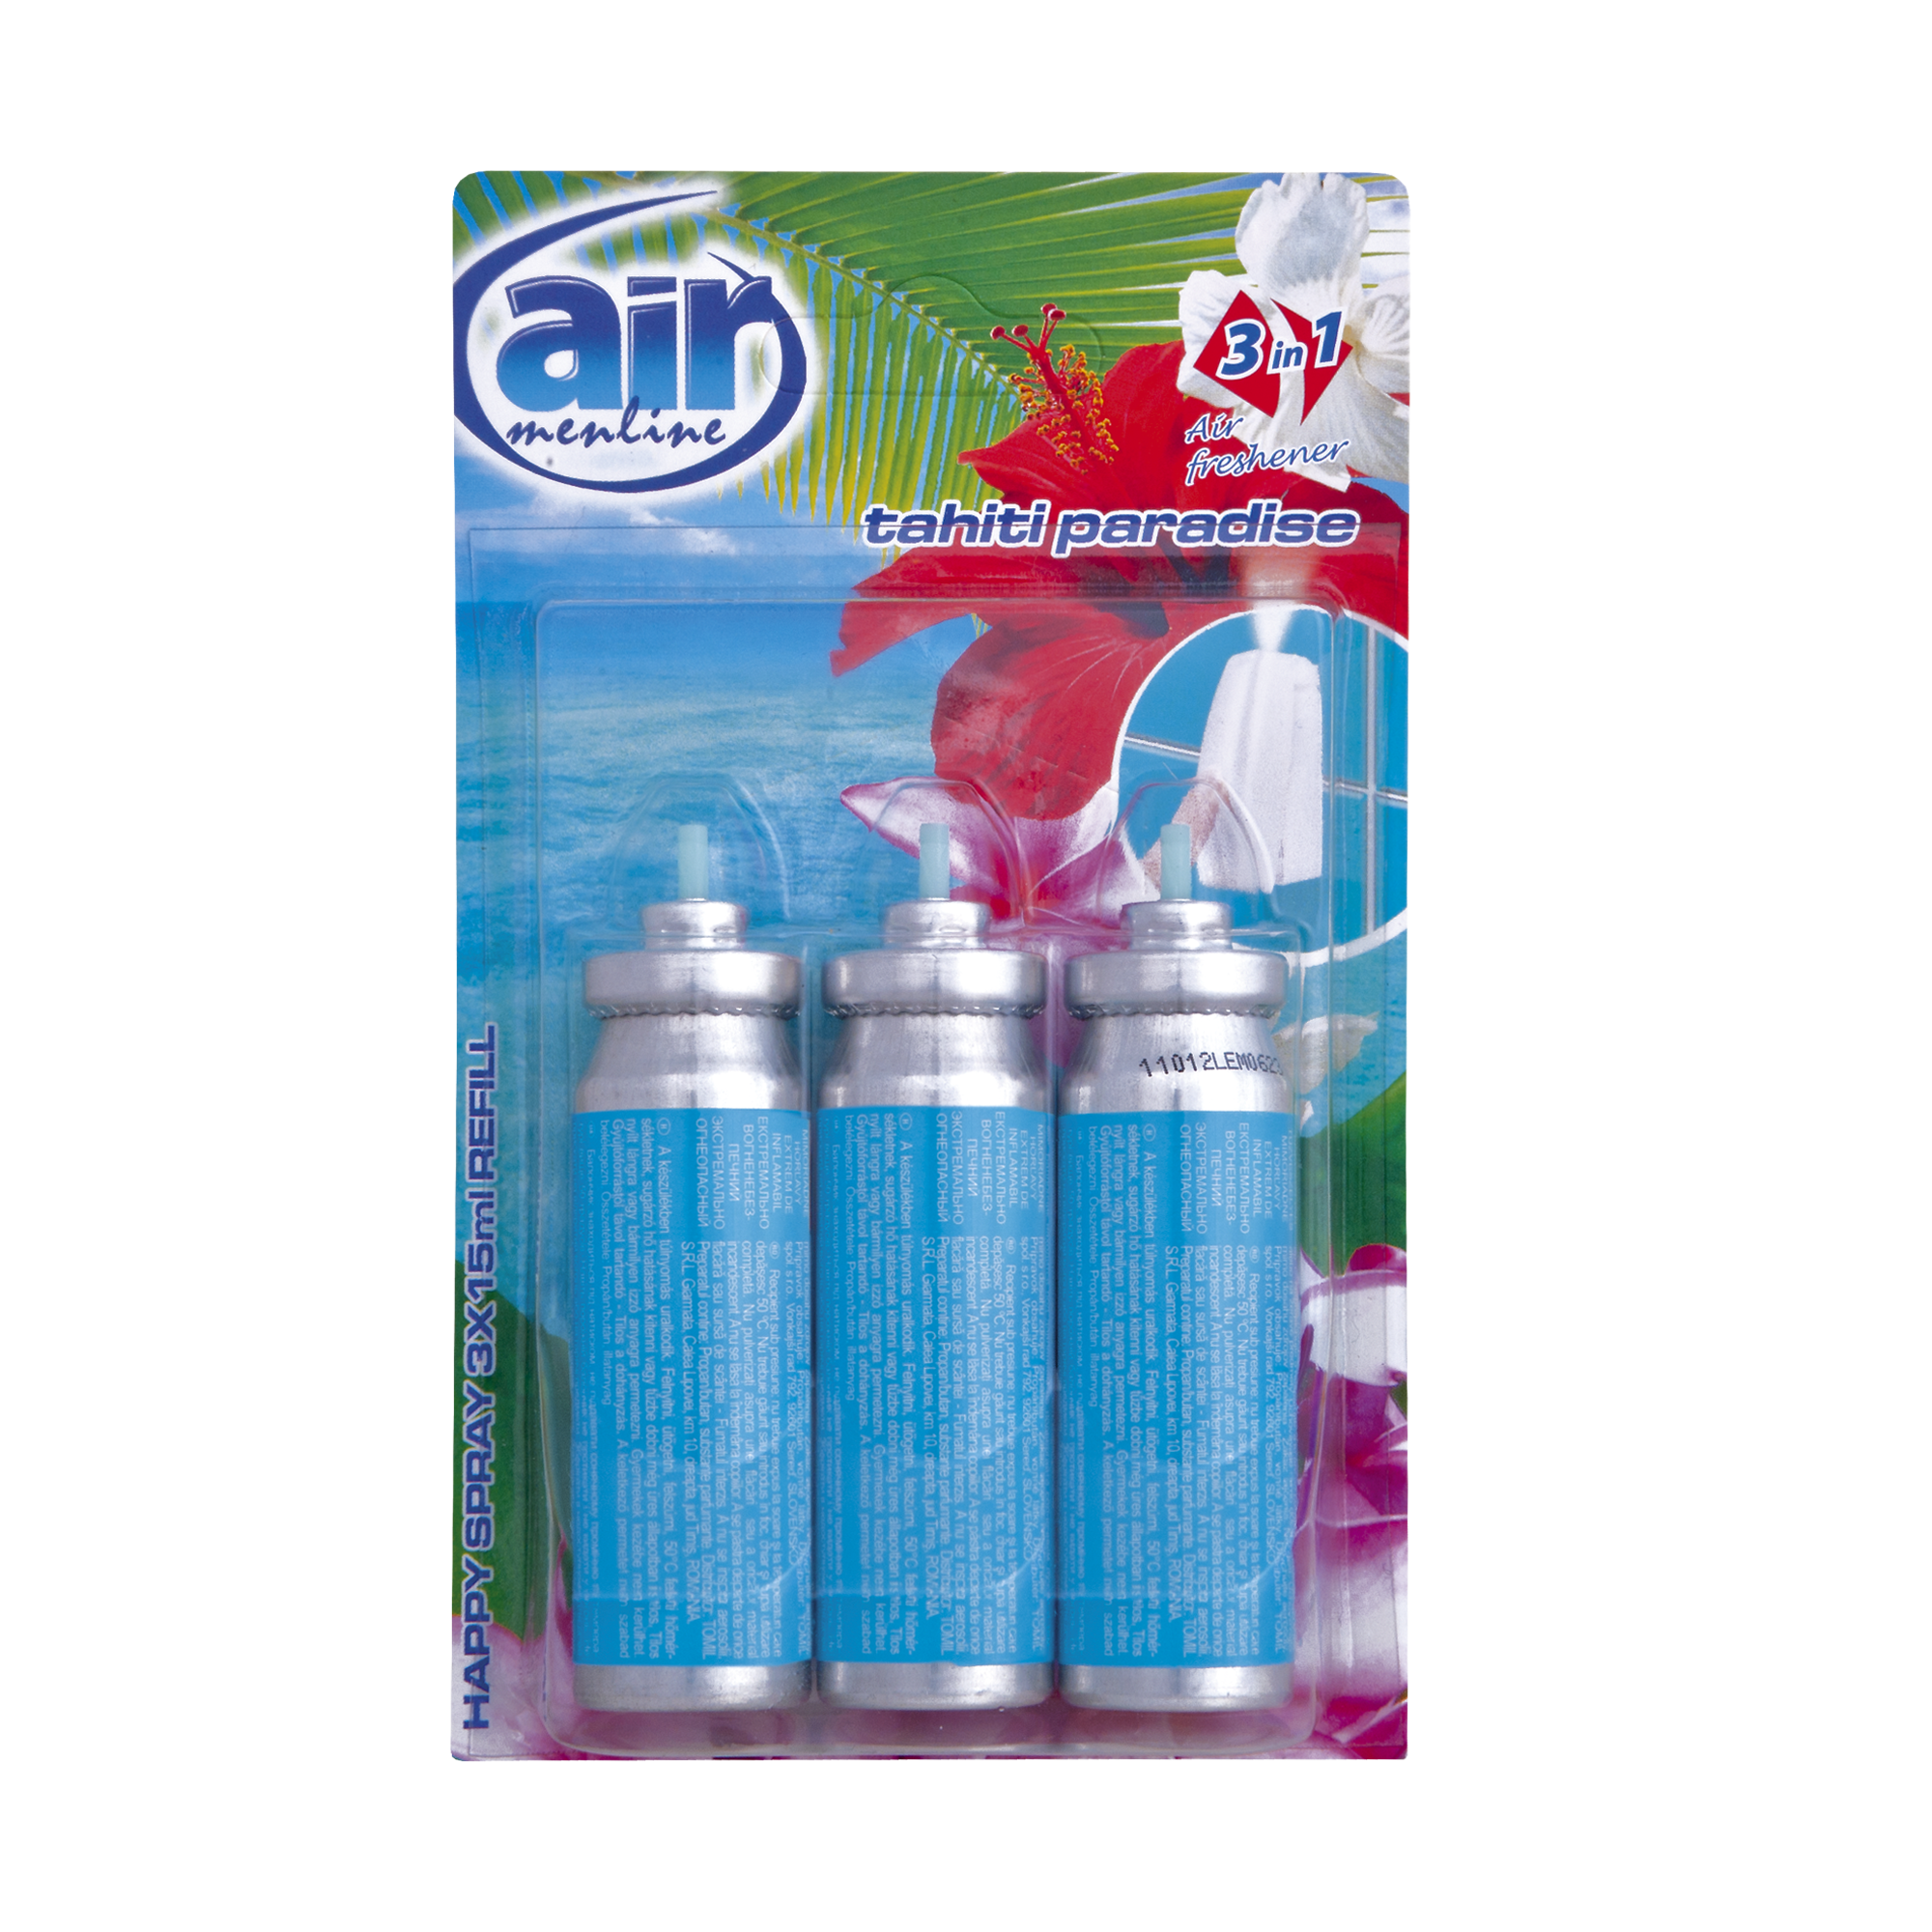 Air menline pulverizatorul Happy spray Tahiti Paradise - refill